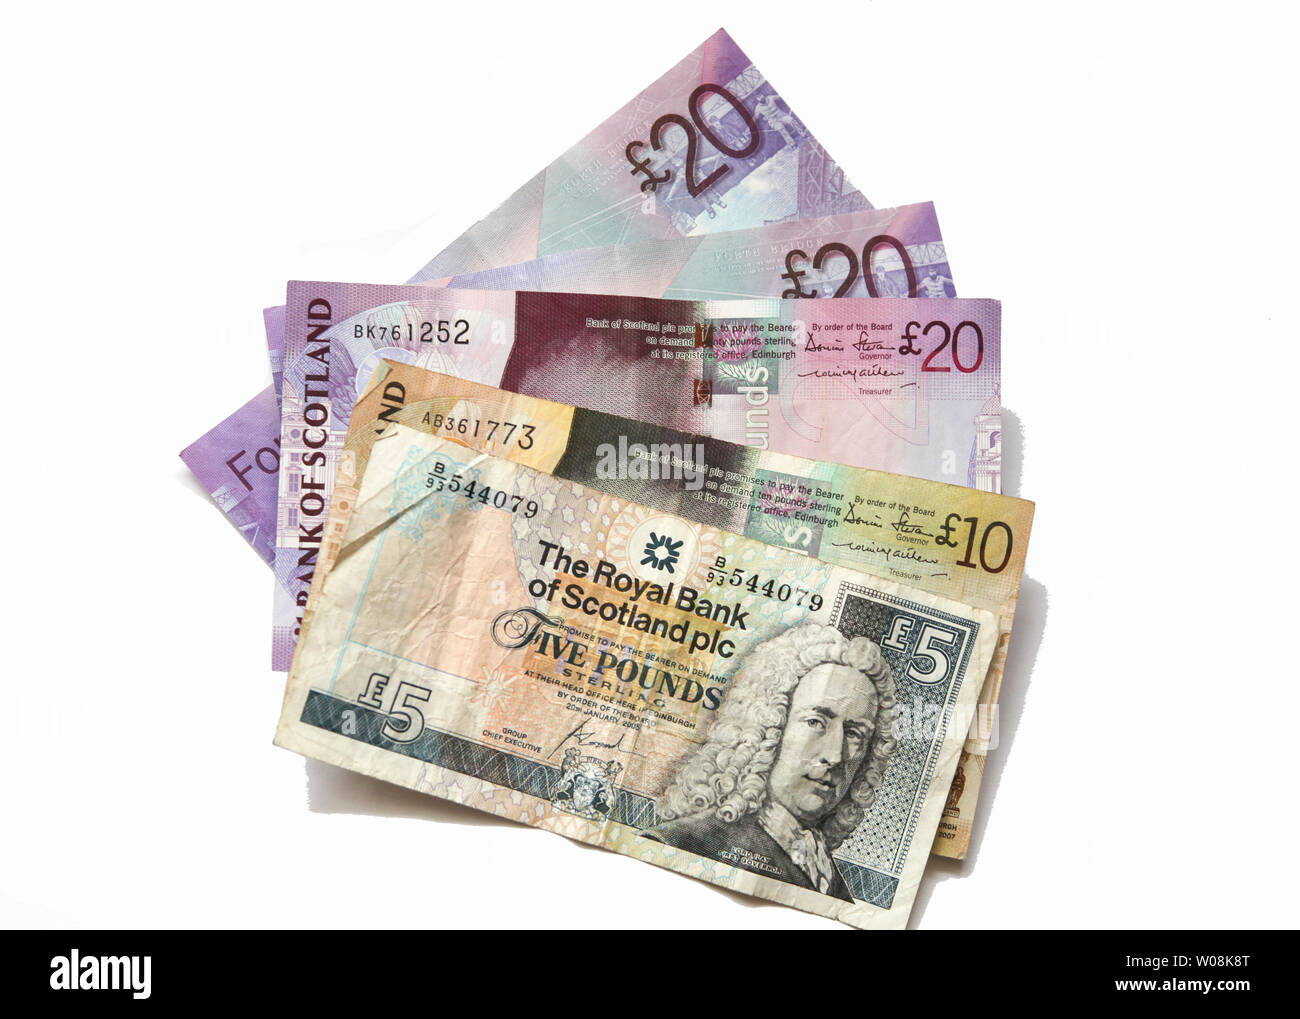 Different banknotes from Scotland - Stock Image